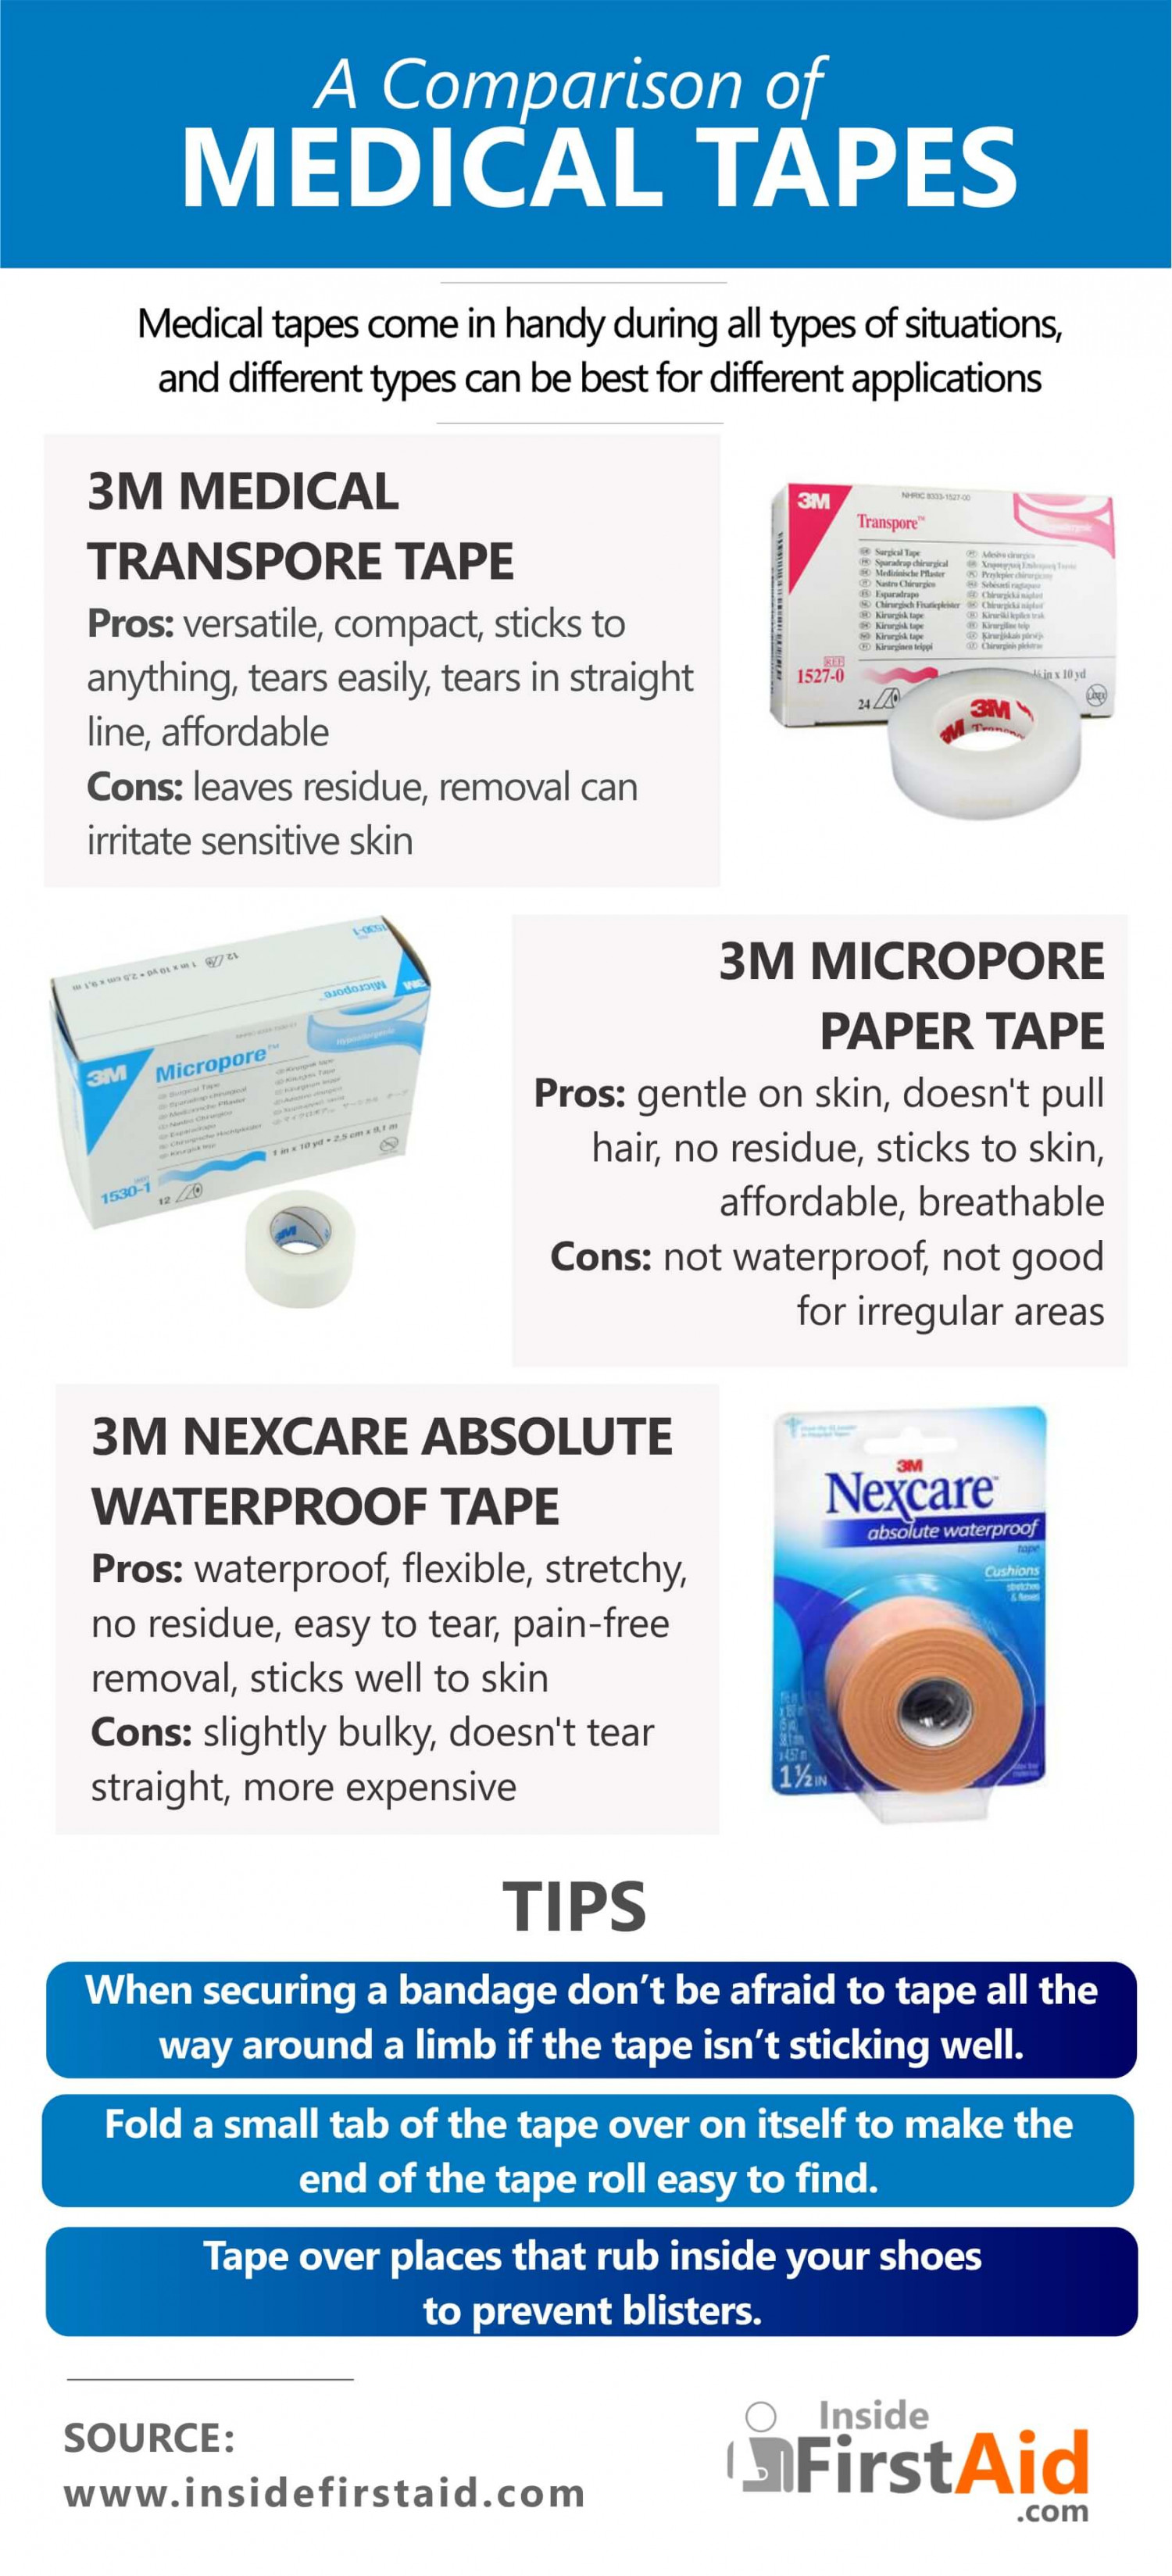 A Comparison of Different Types of Medical Tapes Infographic